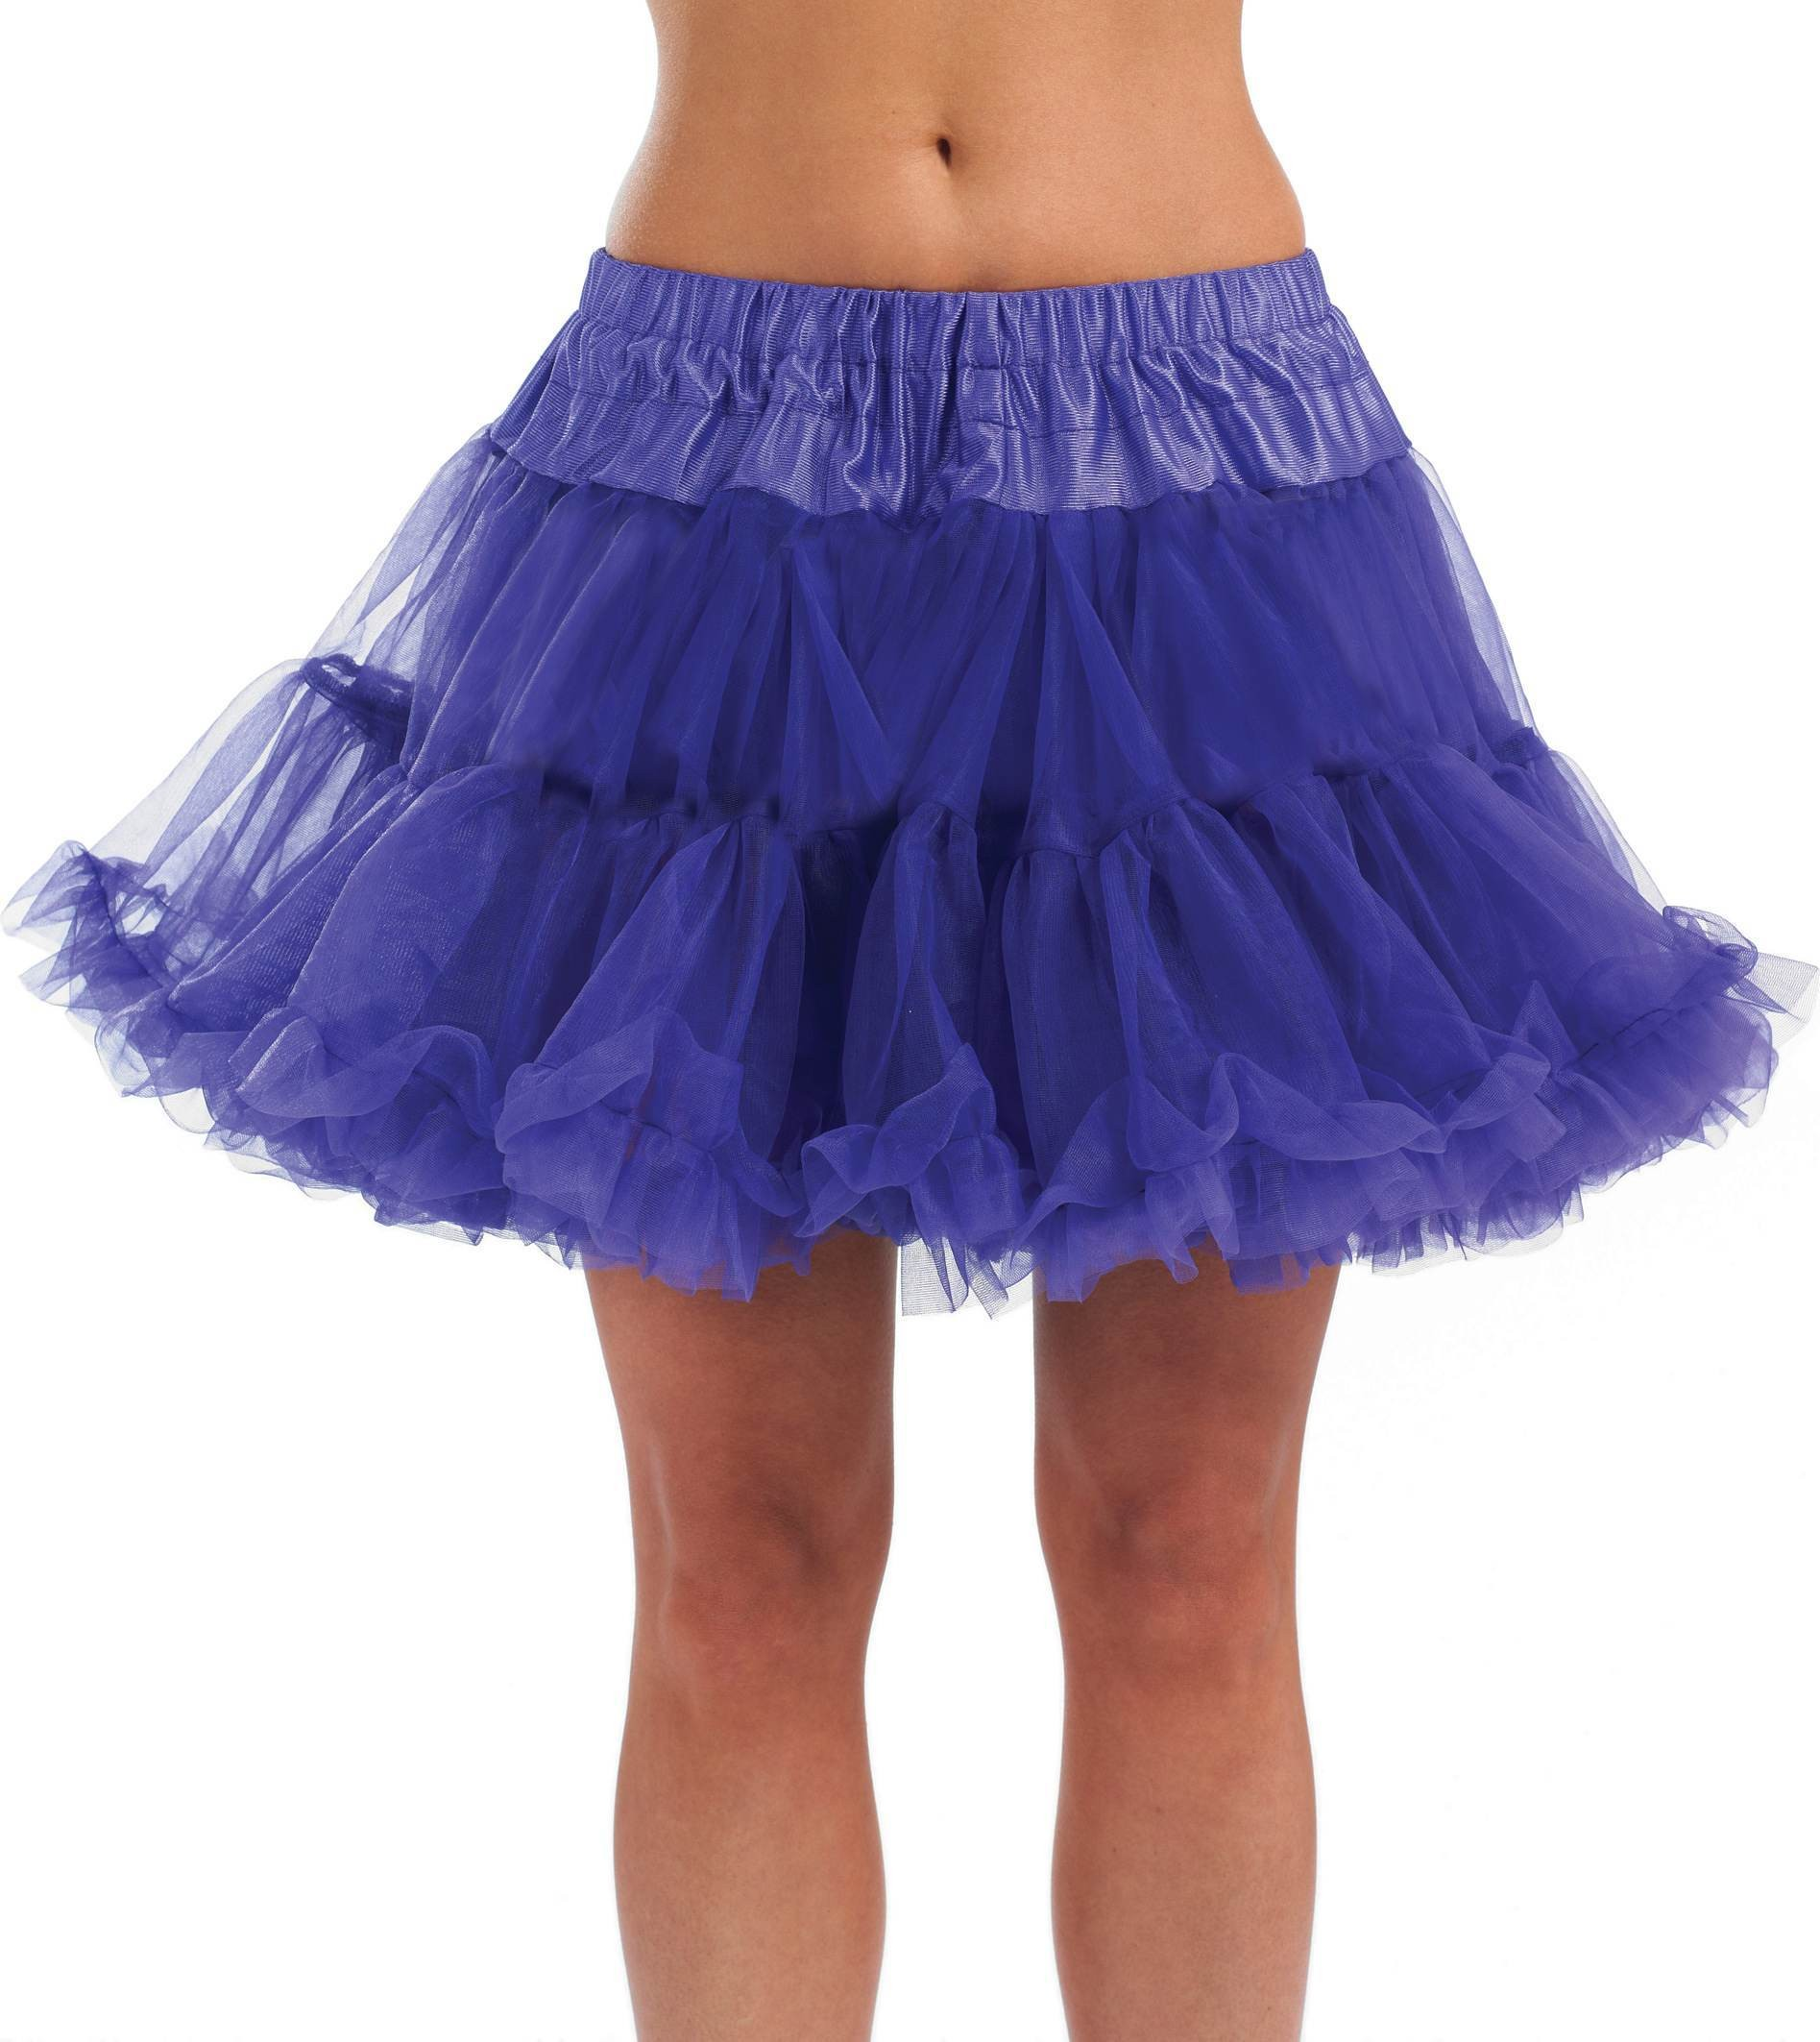 Deluxe Purple Tutu (1980S Fancy Dress)